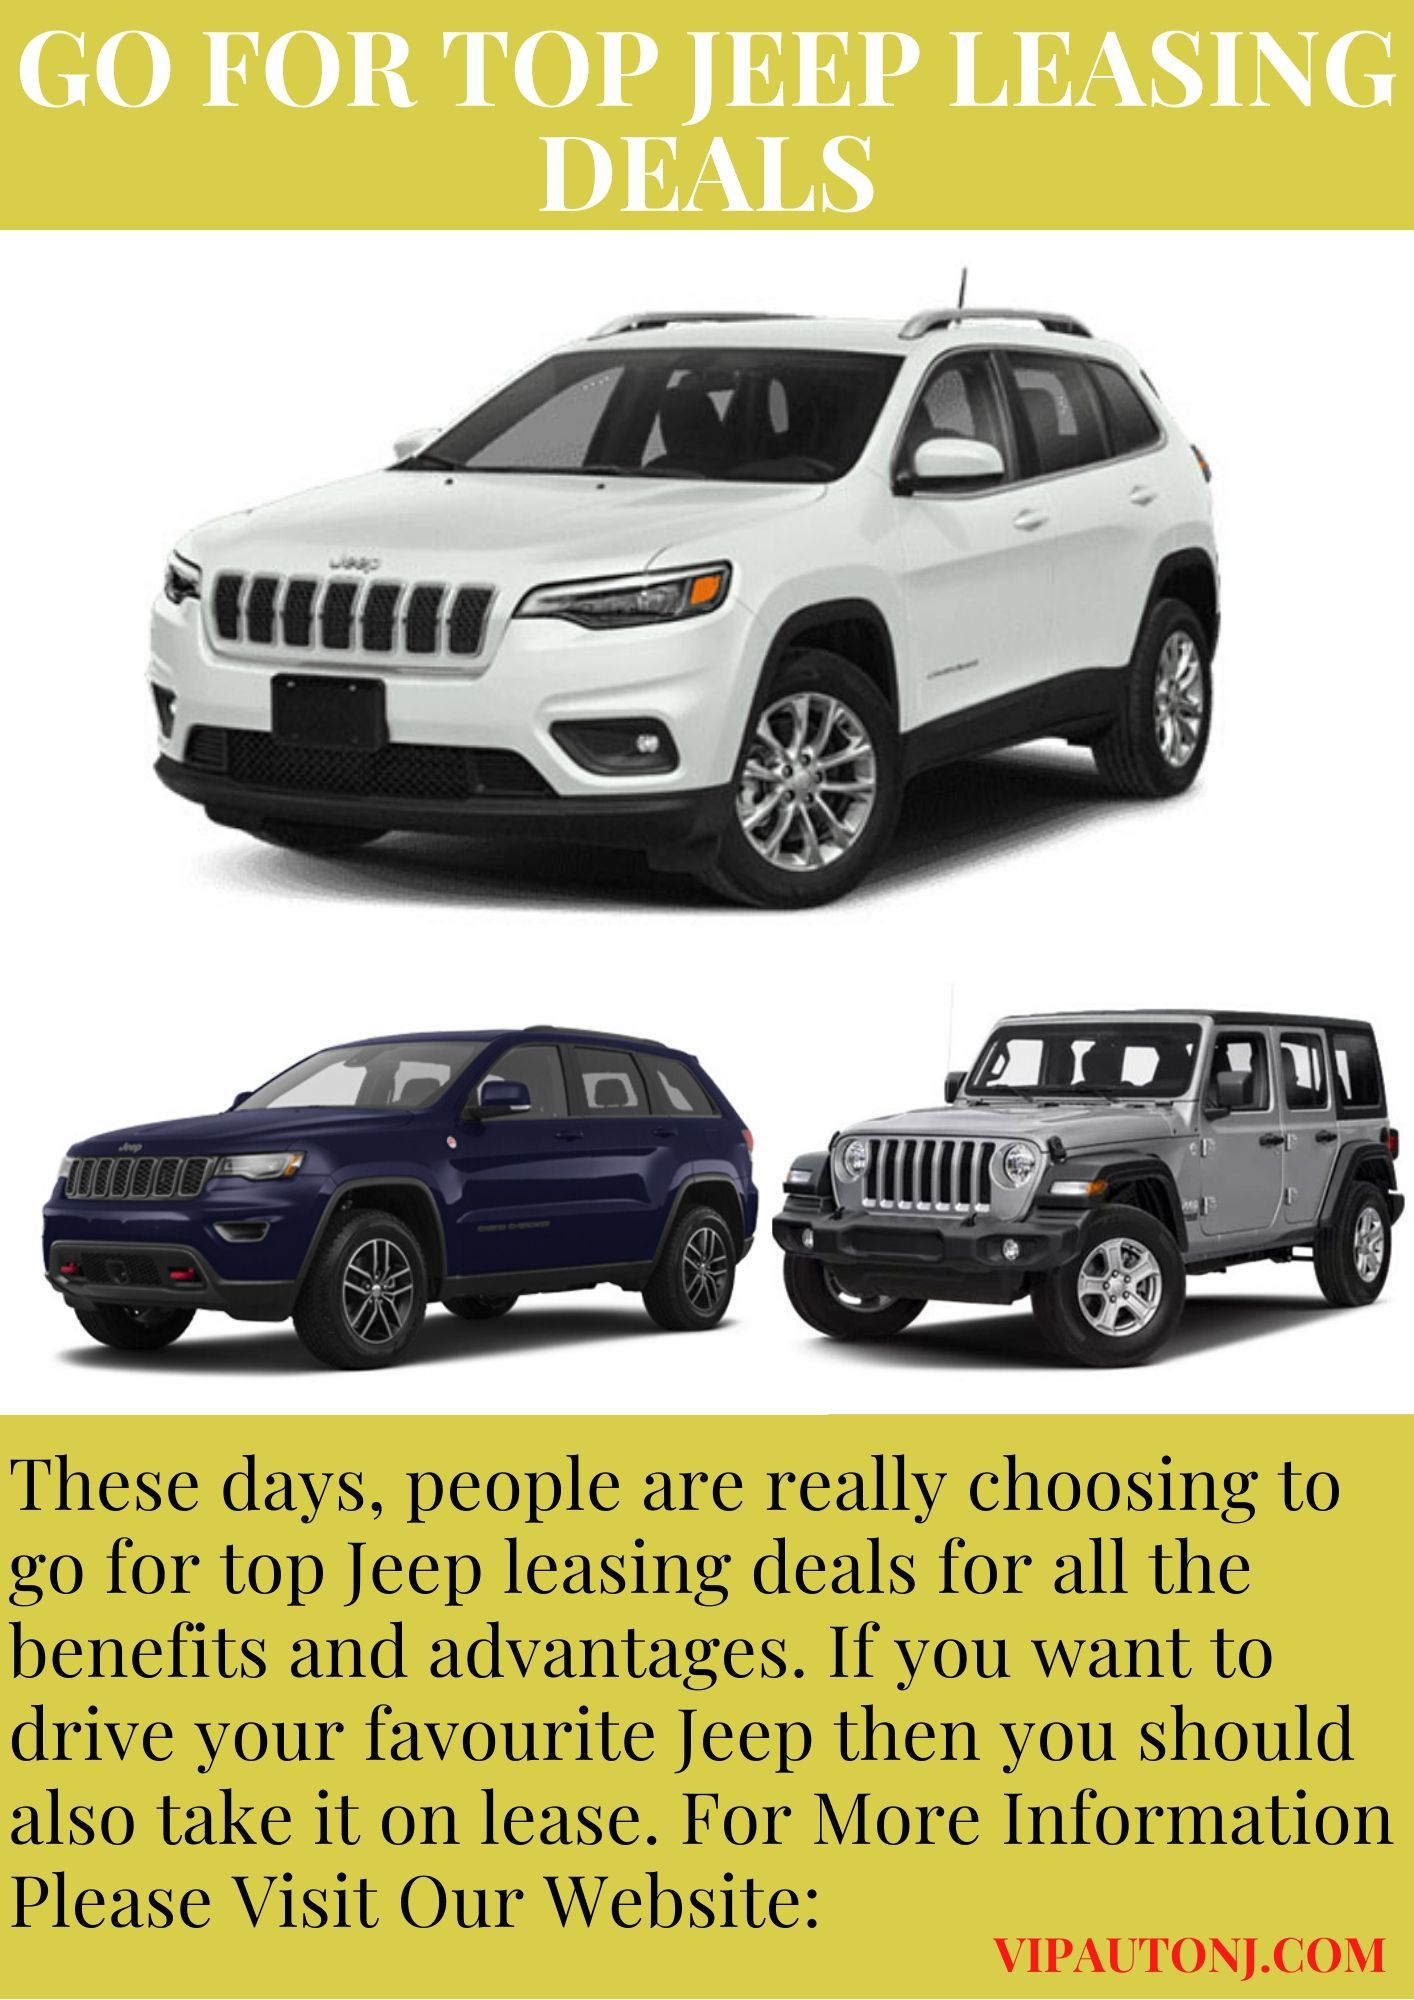 Go For Top Jeep Leasing Deals Jeep Deal Goes